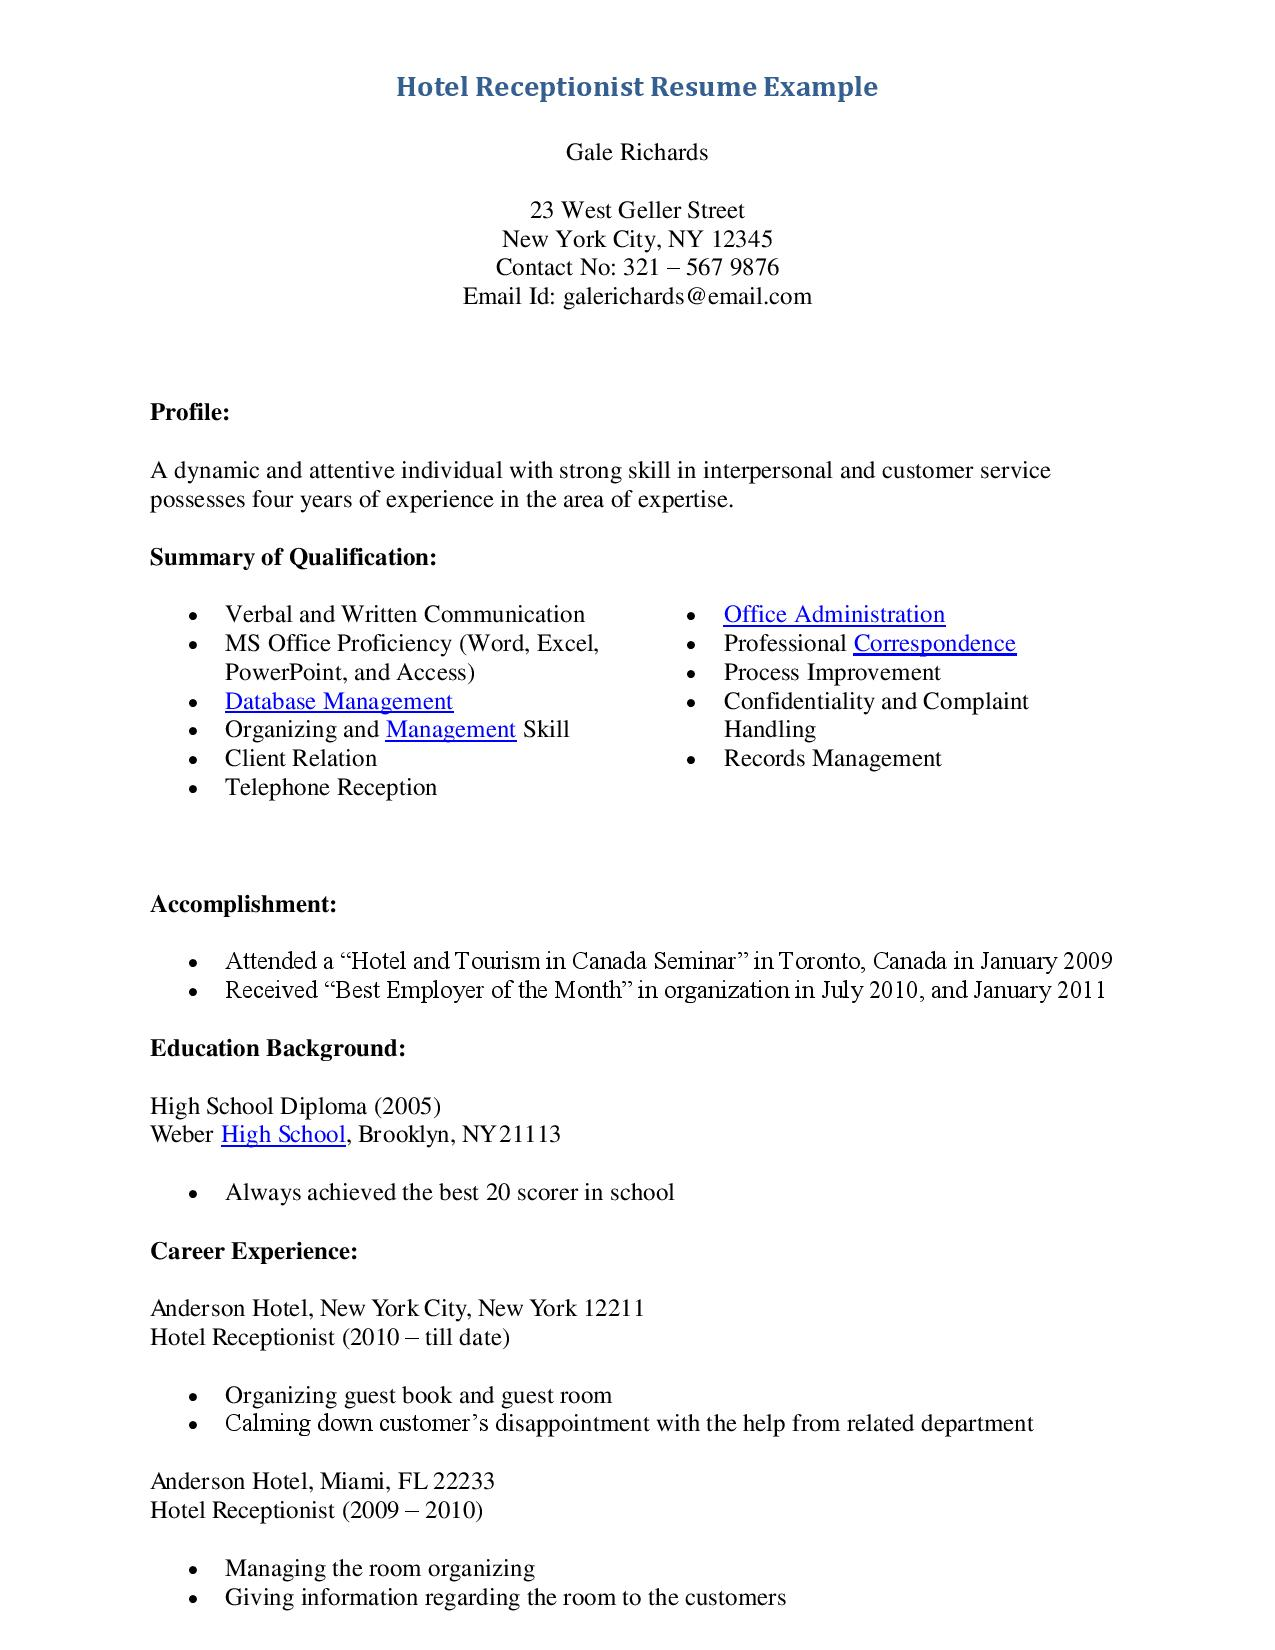 Best Resume Format For Receptionist Marchigianadoctk - Cv-resume-receptionist